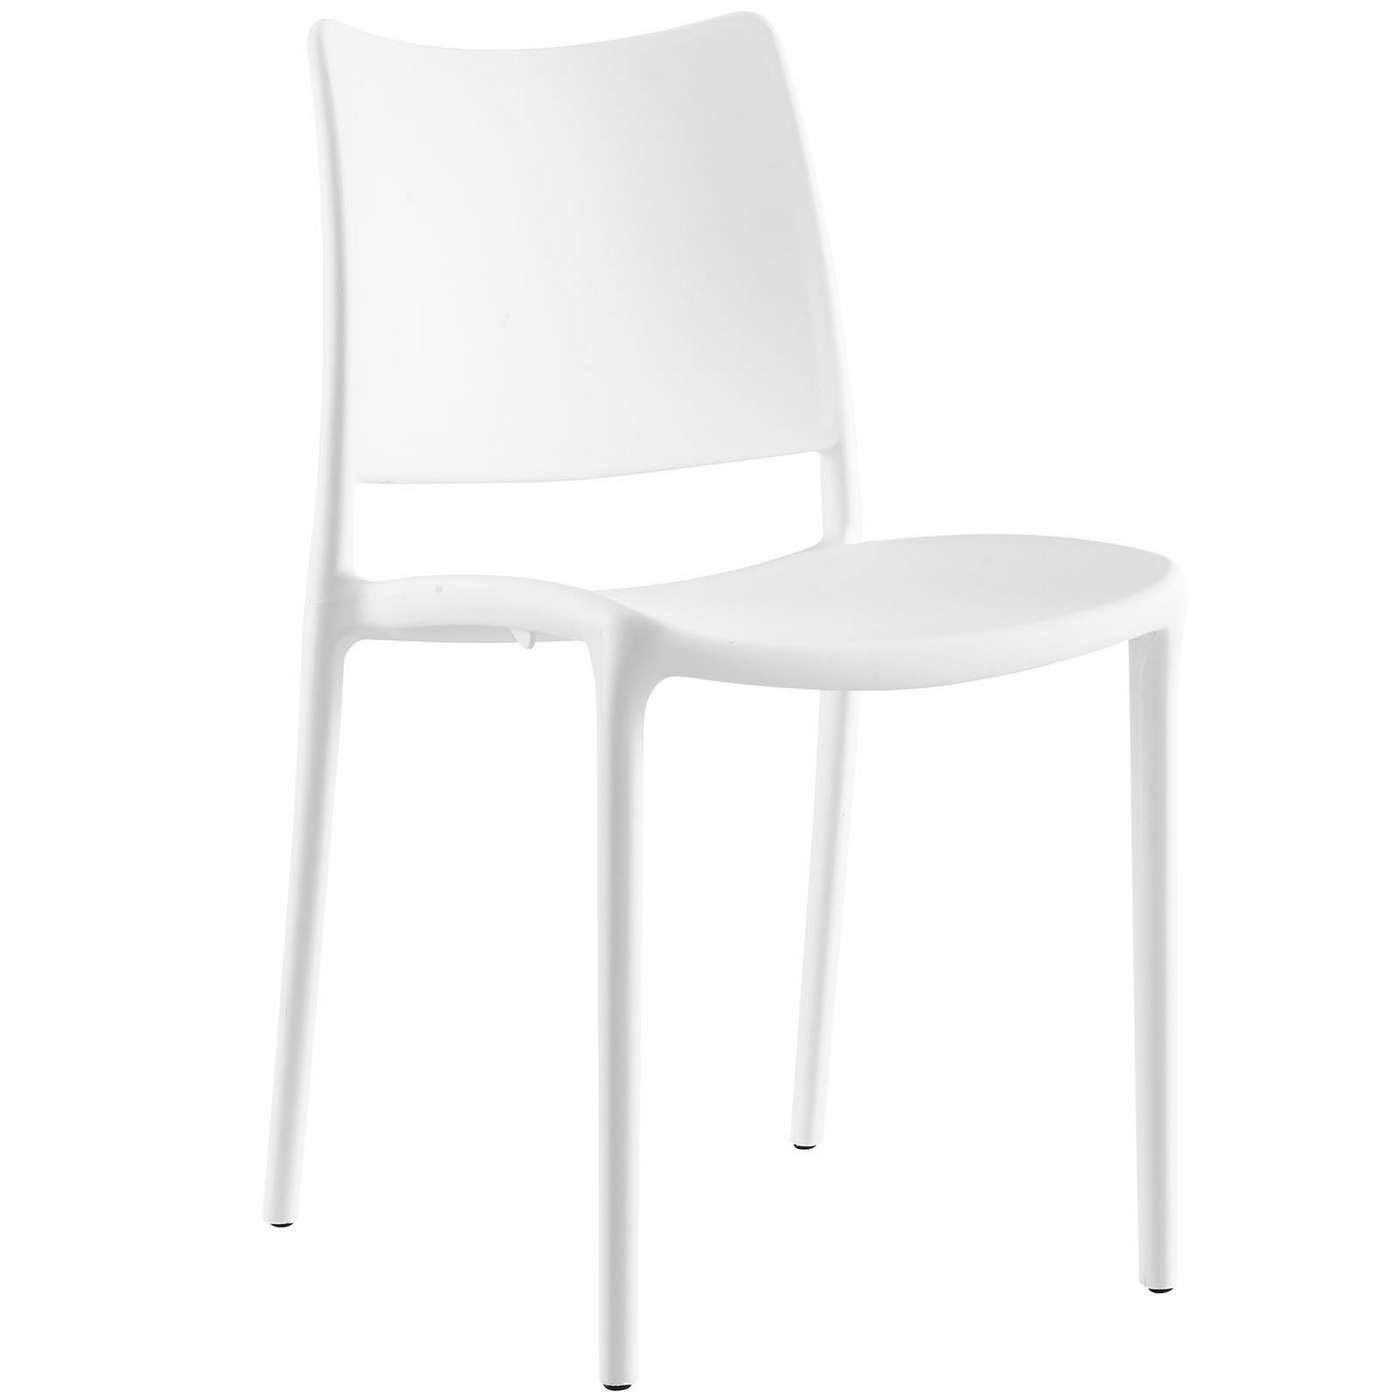 White Plastic Modern Chairs Hipster Contemporary Stackable Plastic Dining Side Chair